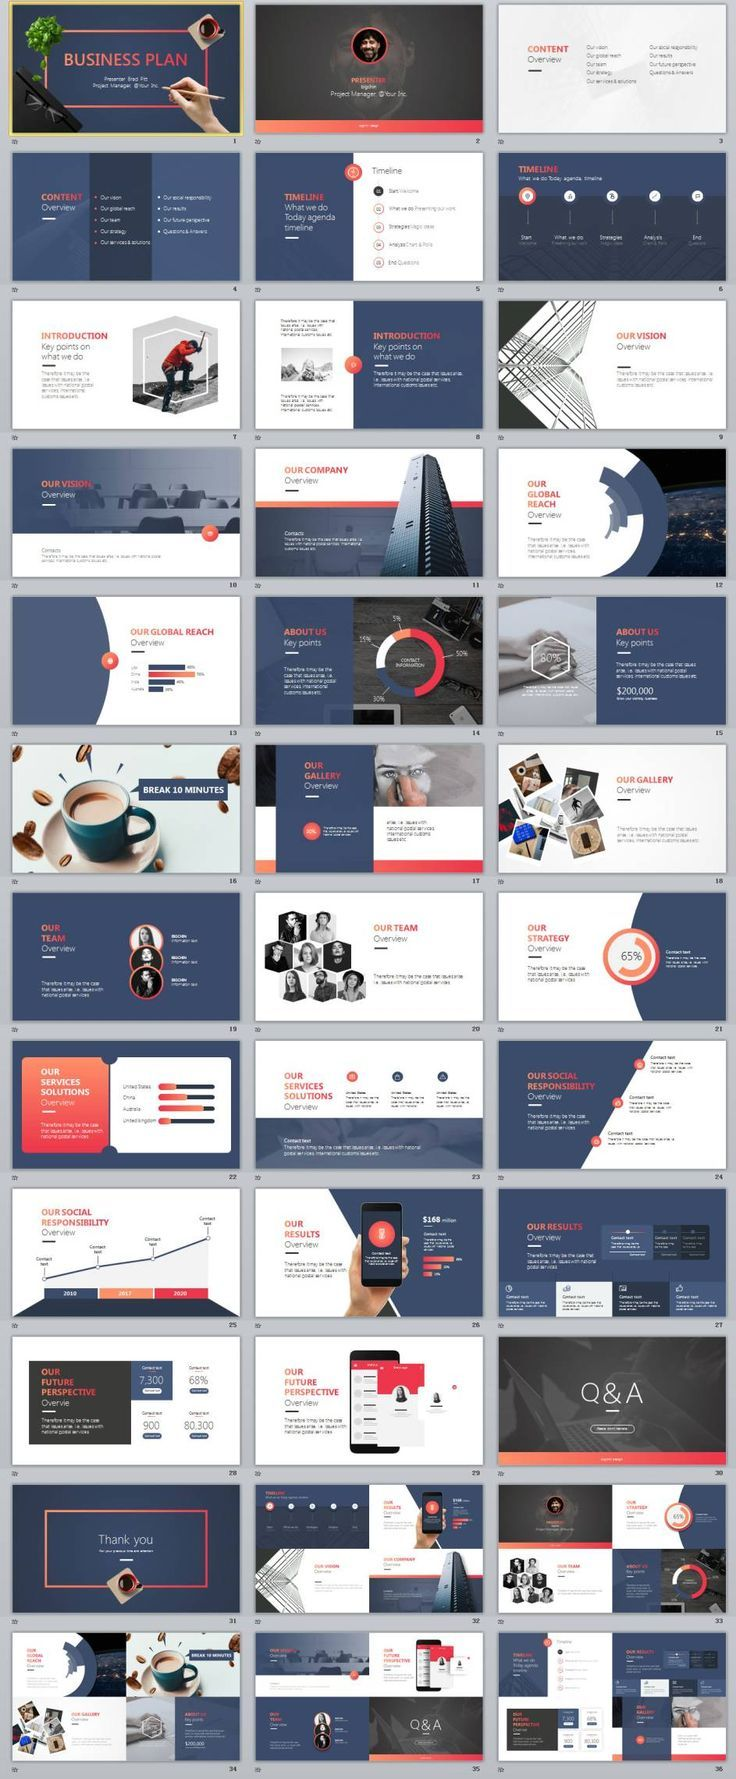 30+ Best tech Business plan PowerPoint template Graphic